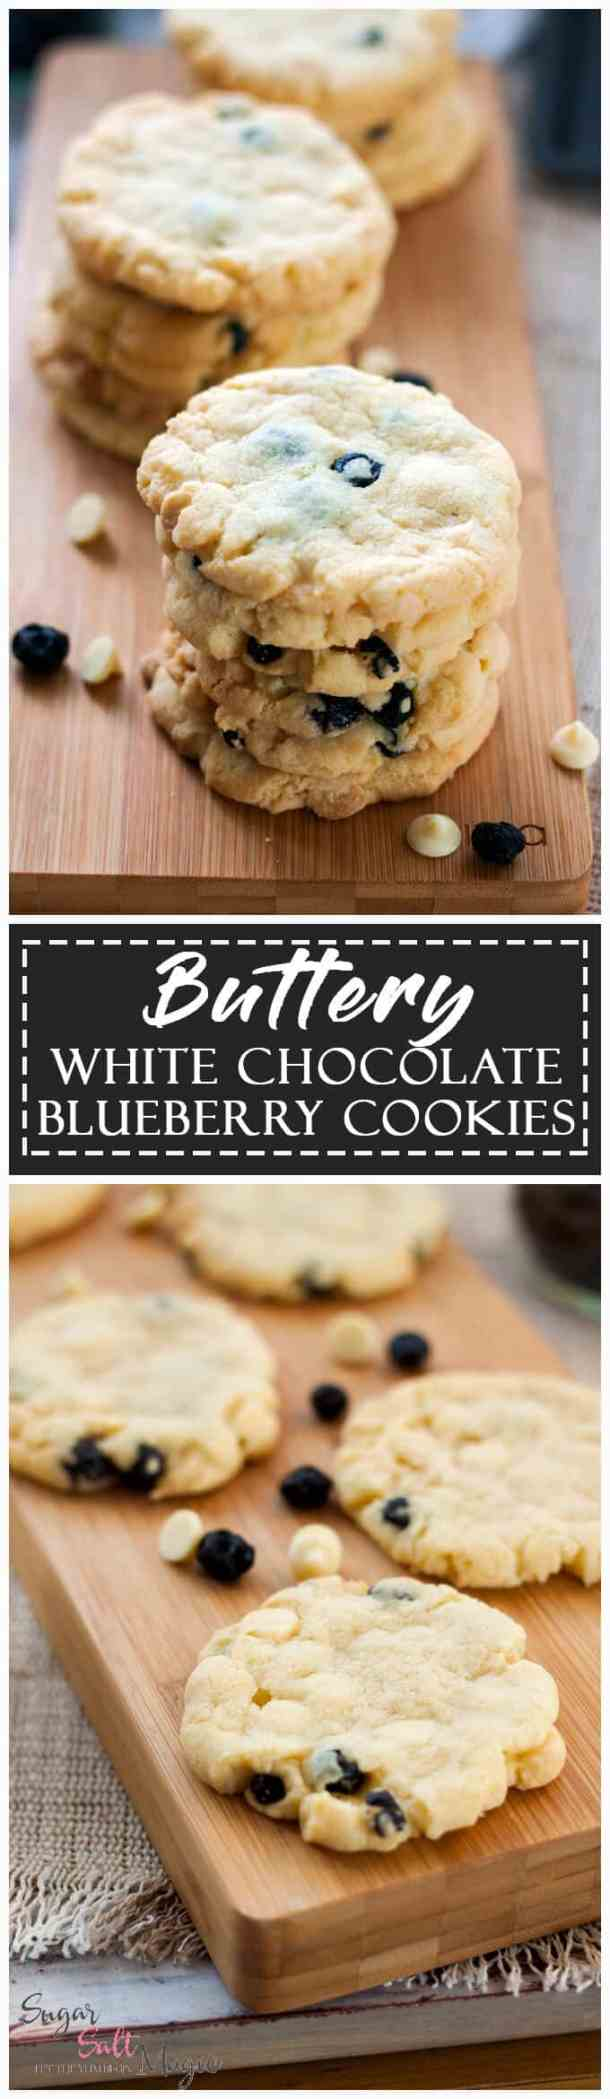 My Buttery White Chocolate Blueberry Cookies are the perfect crispy and chewy, buttery cookie filled with dried blueberries and white chocolate.